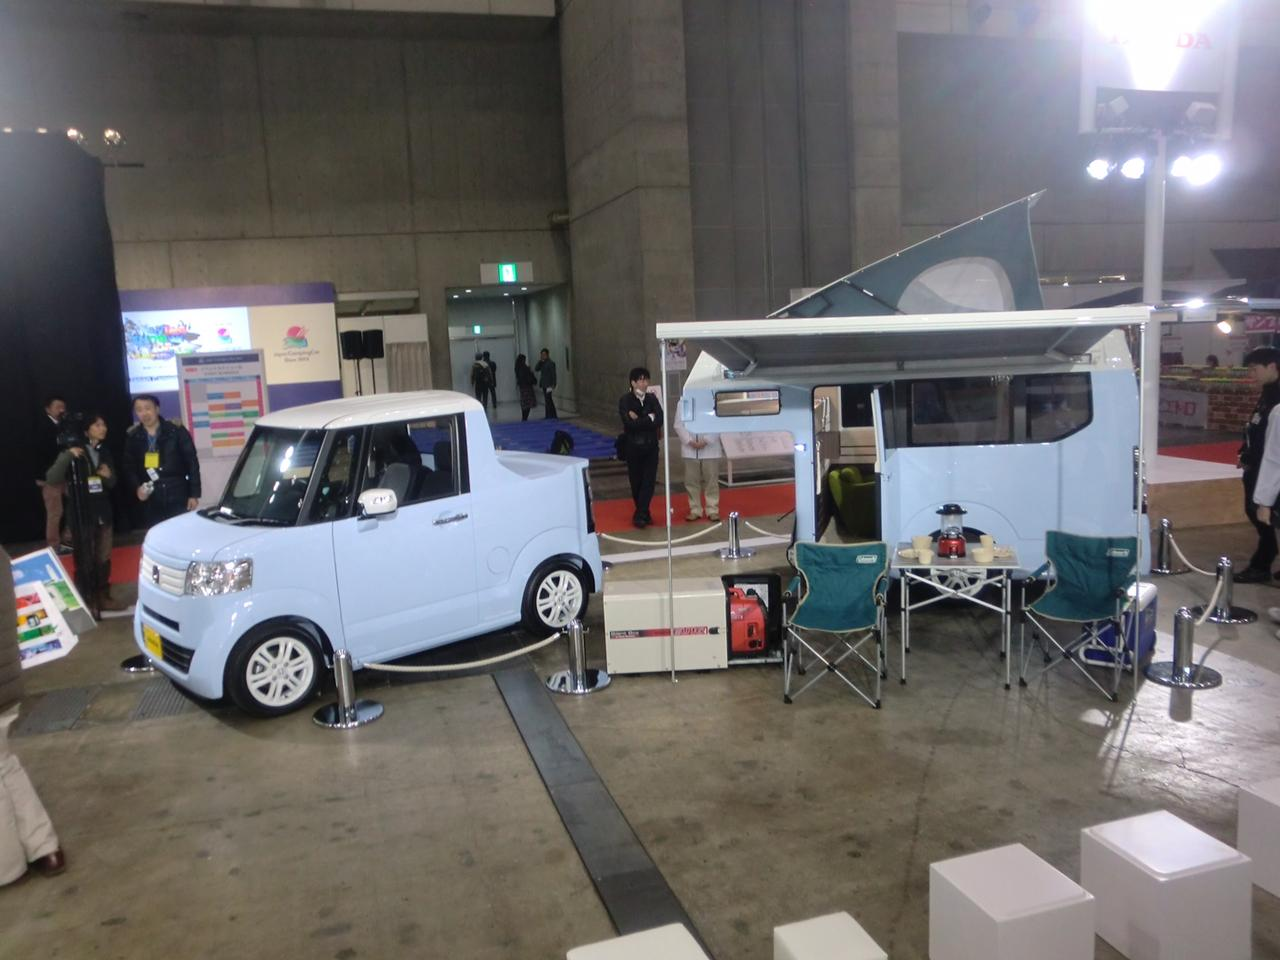 Kei campers can be tow behinds like this image. Image of a micro truck and camper.